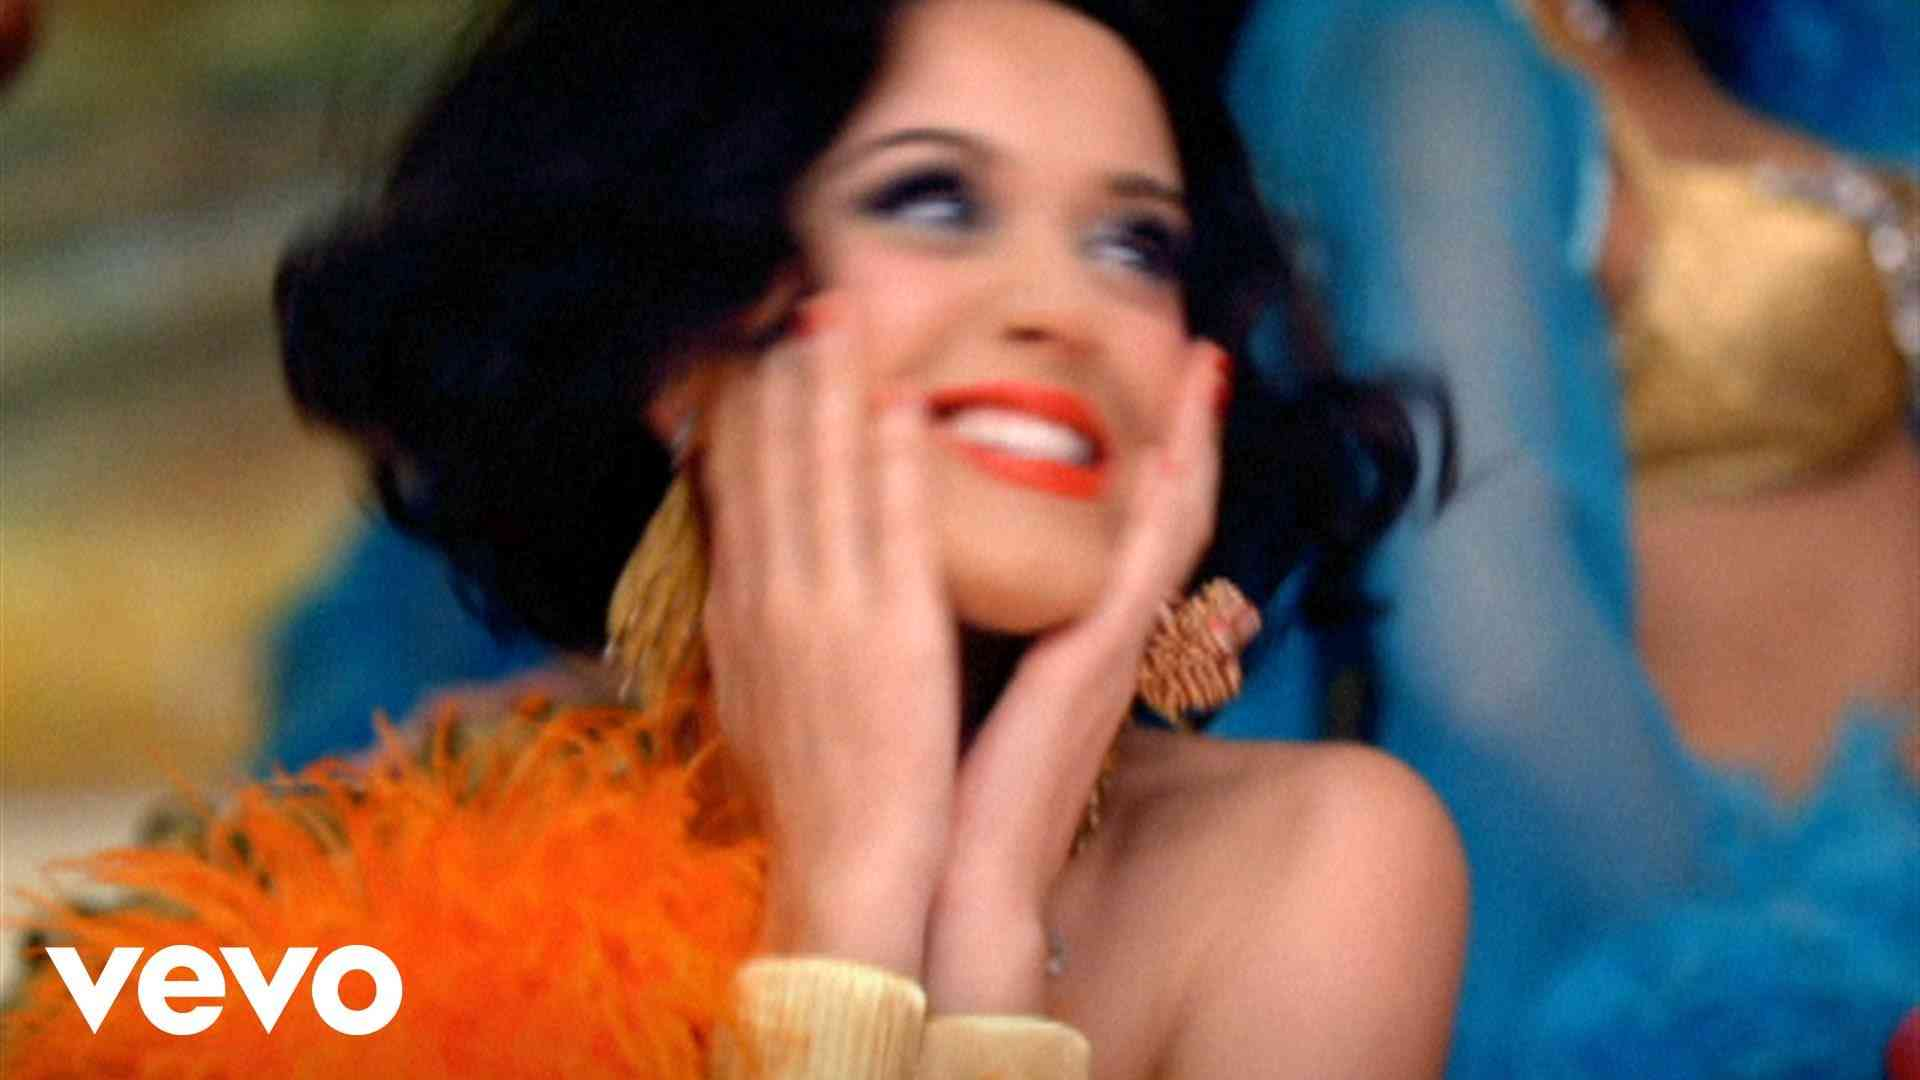 Katy Perry - Waking Up In Vegas - YouTube